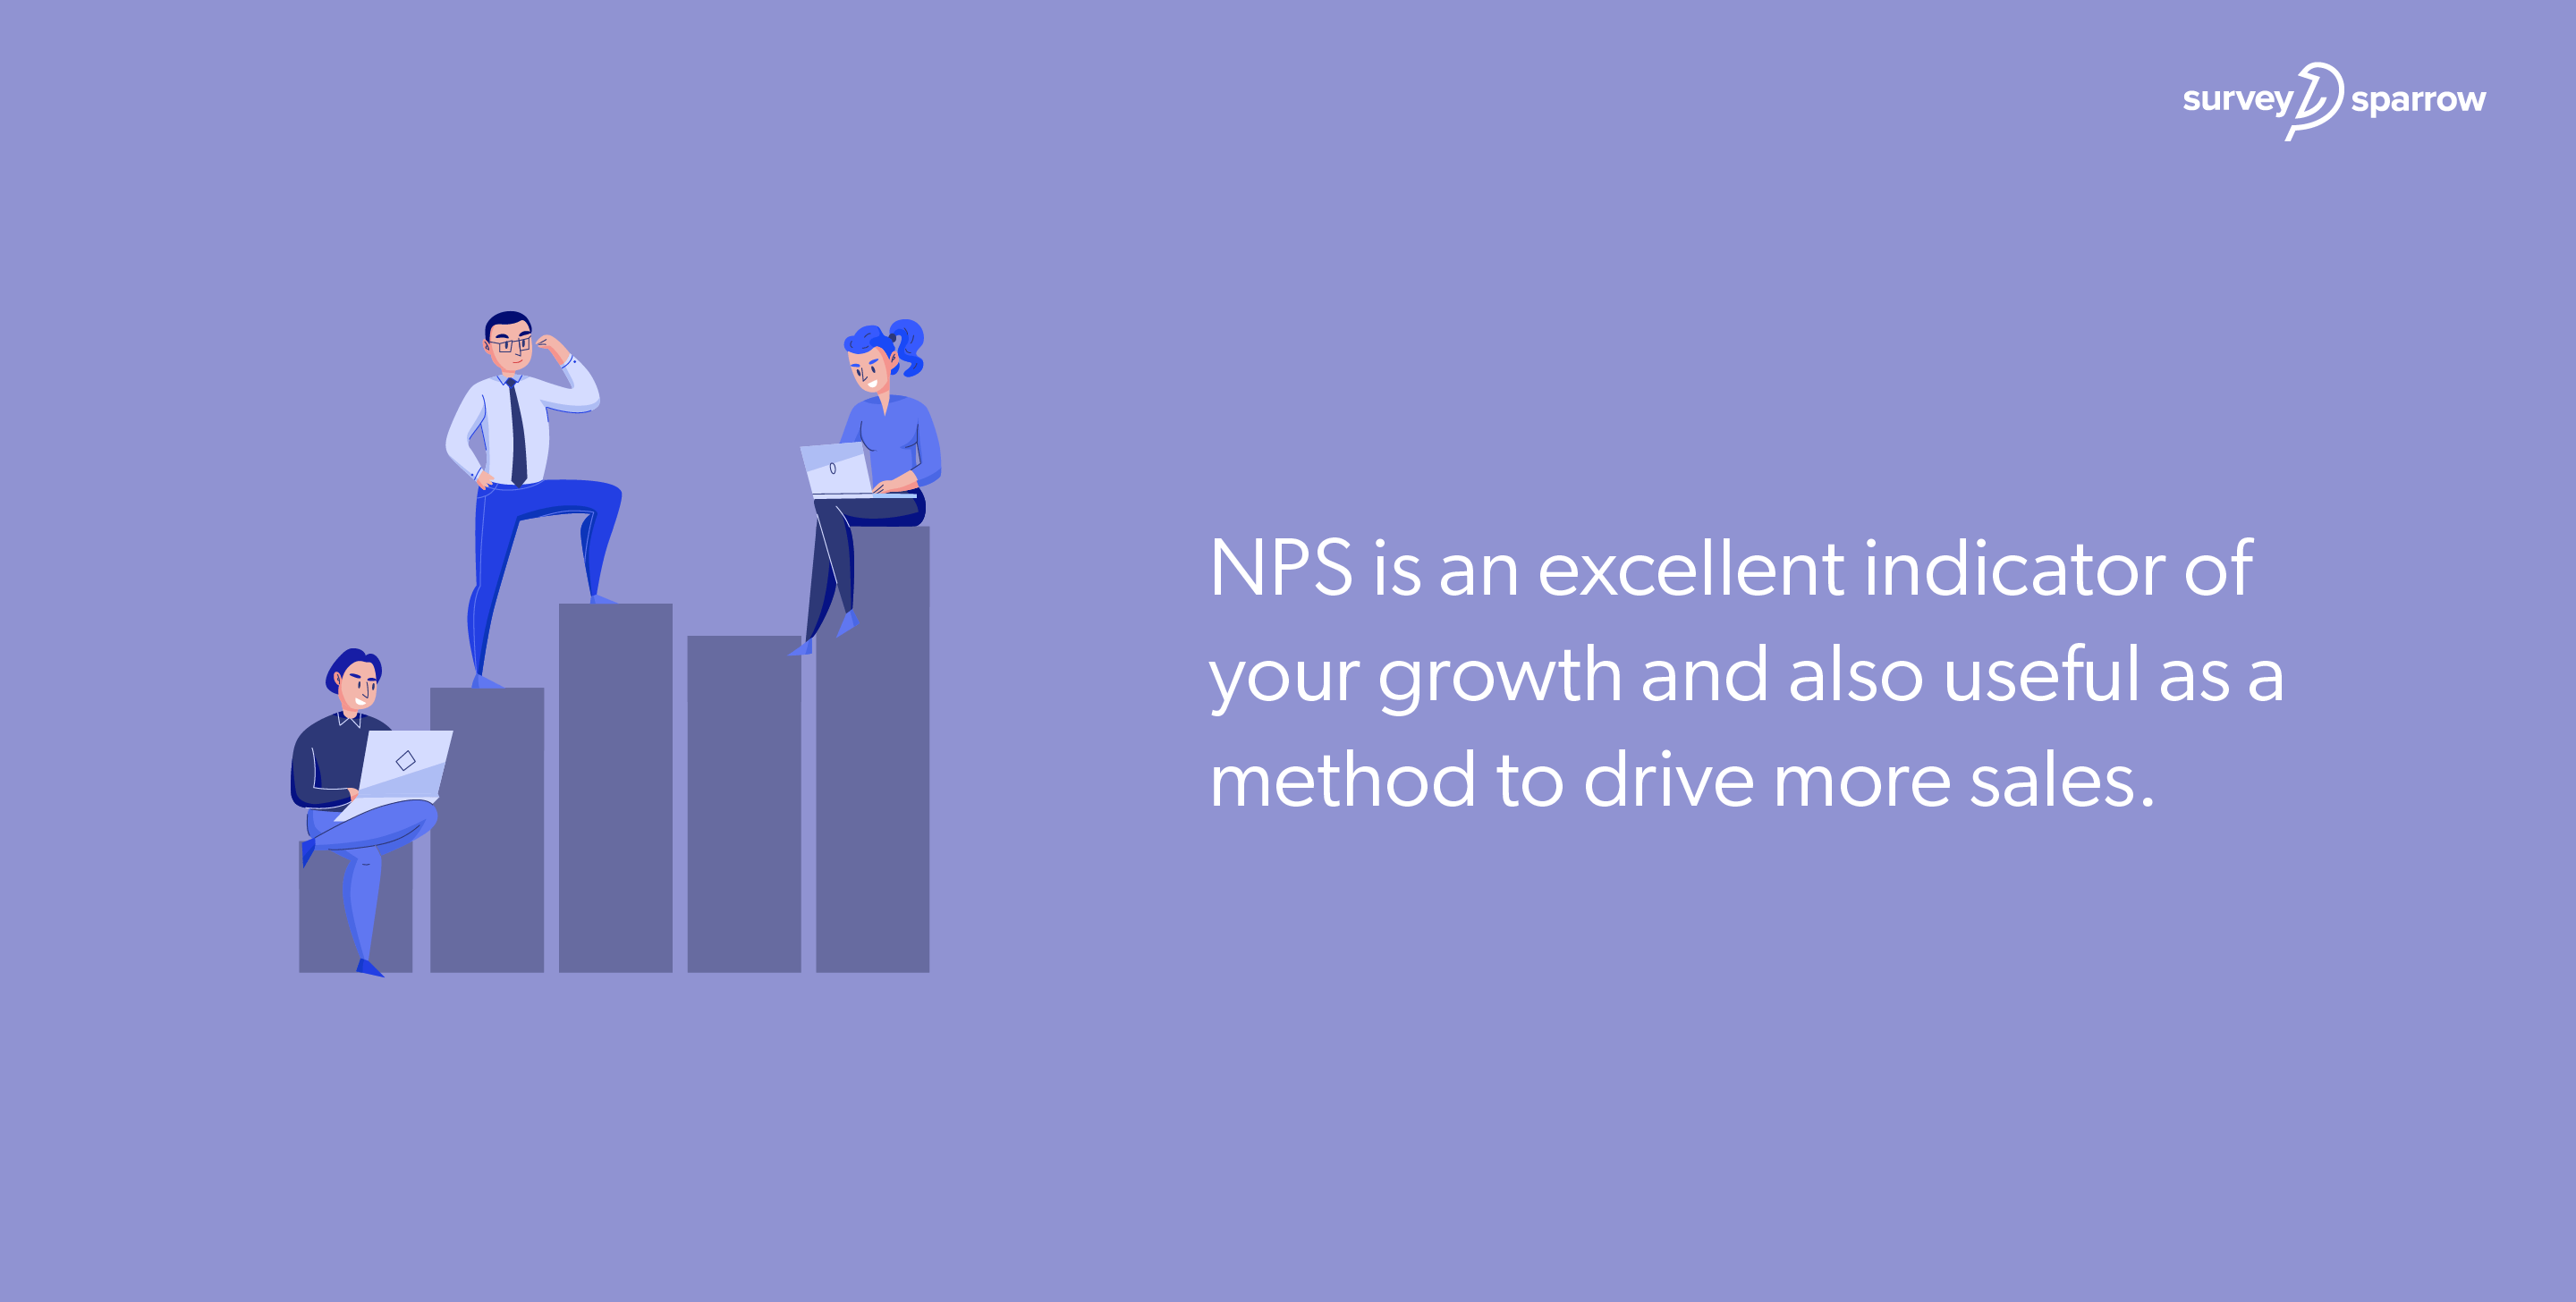 NPS is an excellent indicator of your growth and also useful as a method to drive more sales.